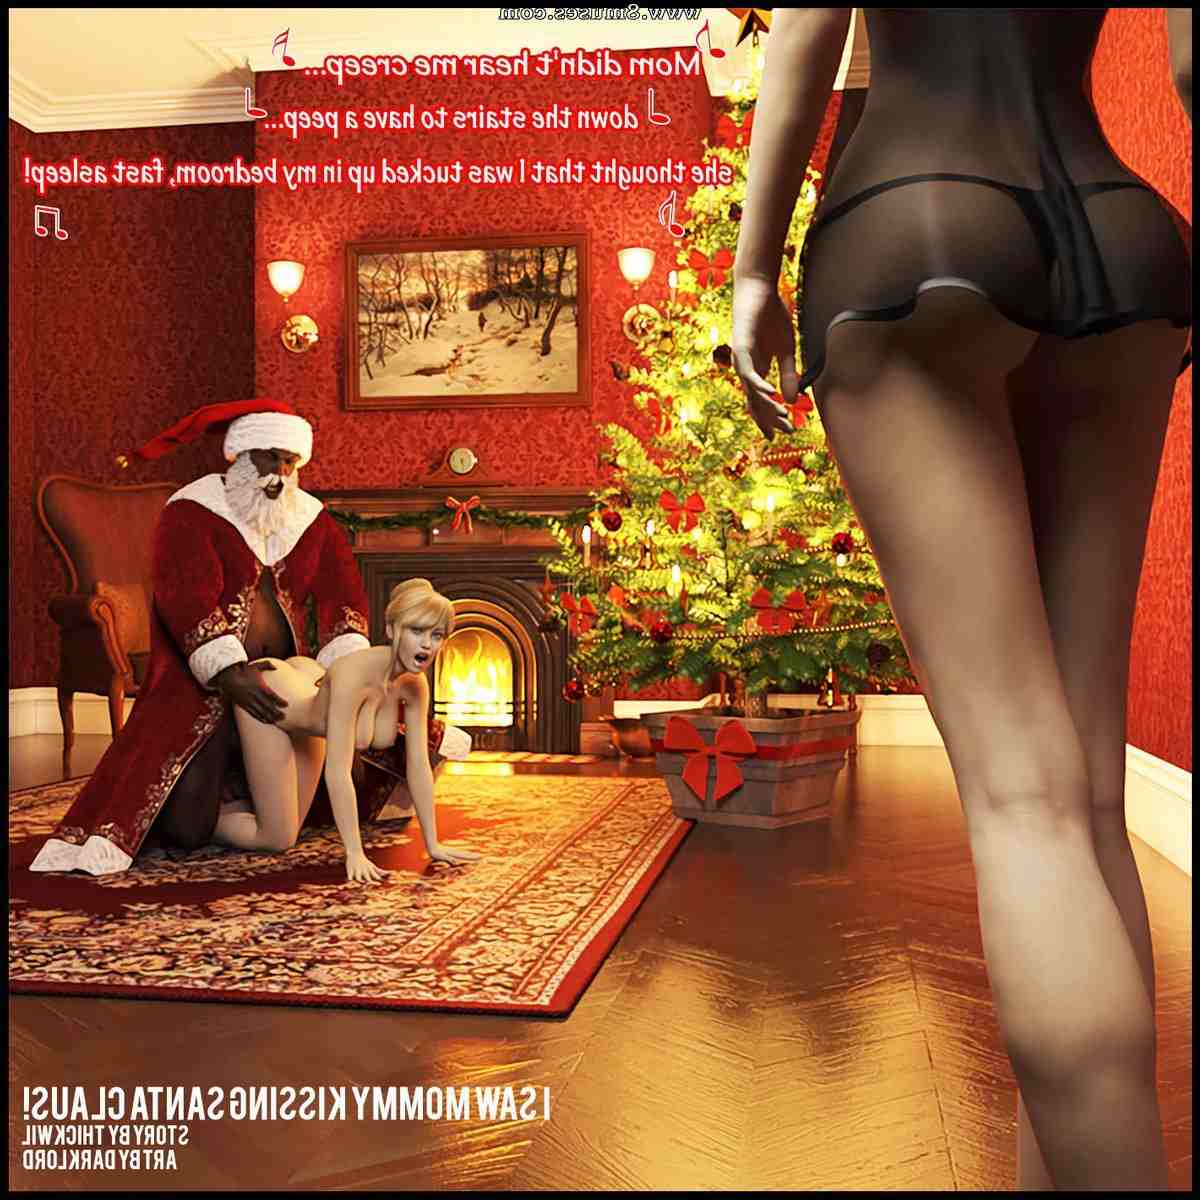 JohnPersons_com-Comics/Darklord/I-Saw-Mommy-Kissing-Santa-Claus I_Saw_Mommy_Kissing_Santa_Claus__8muses_-_Sex_and_Porn_Comics.jpg